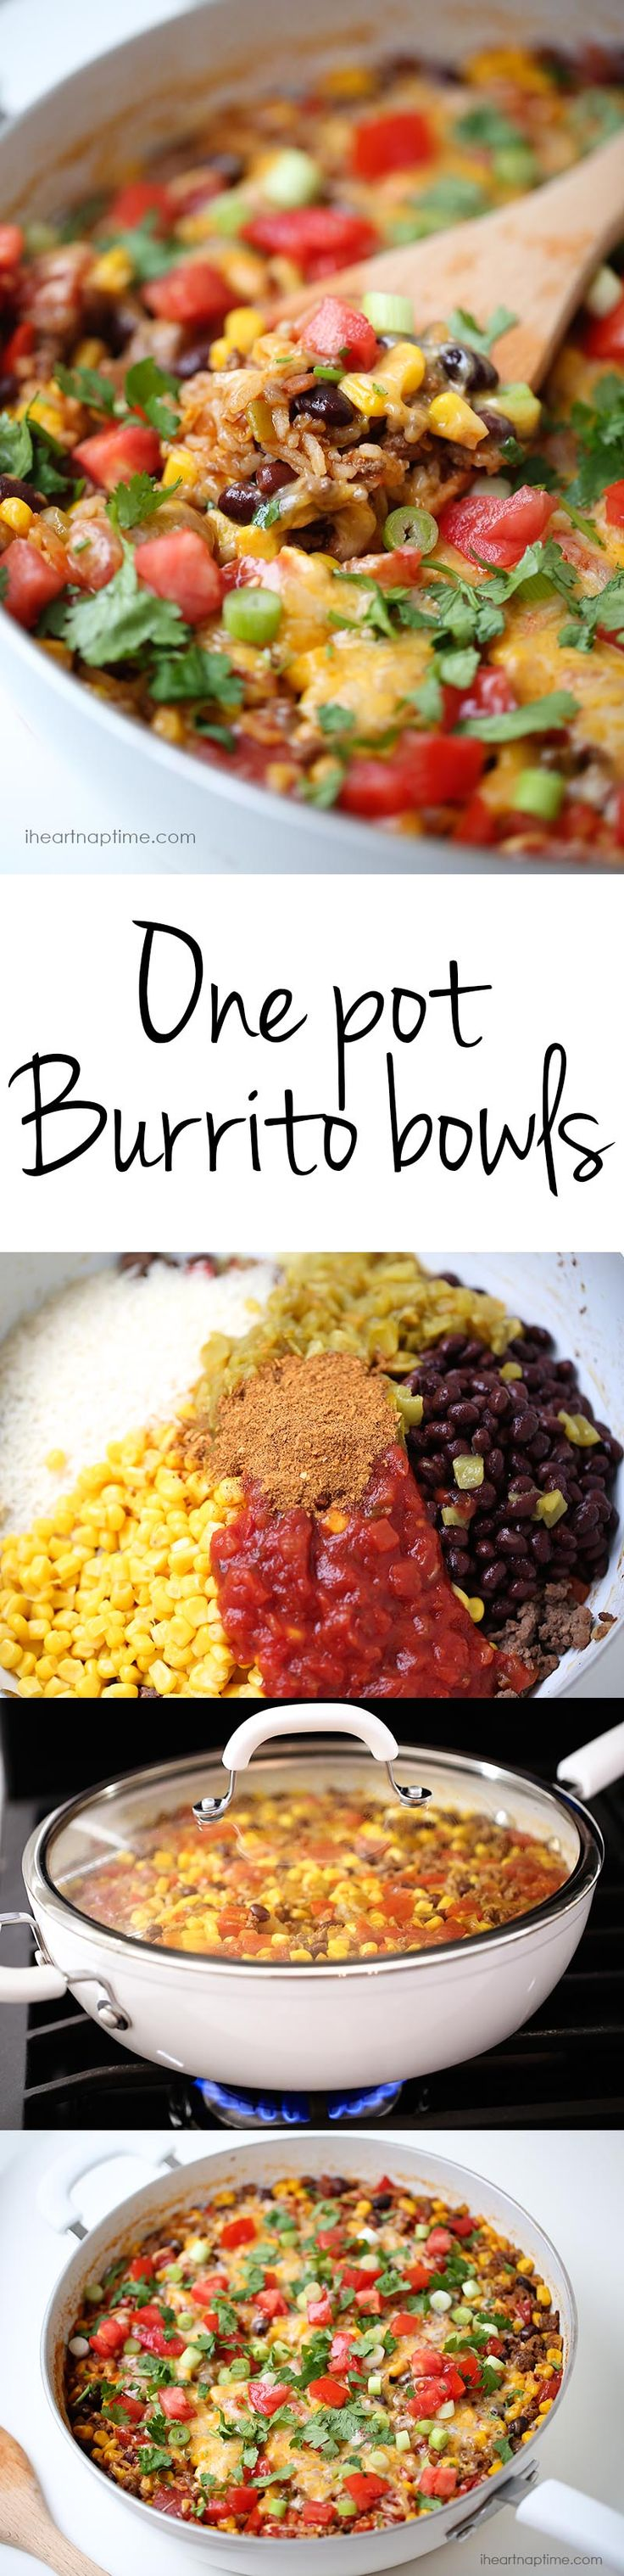 One pot burrito bowls recipe- we love these easy and delicious burrito bowls. They are made in one pot in 30 minutes …making clean up a breeze. Perfect for busy week nights! #clean #recipes #eatclean #recipe #healthy